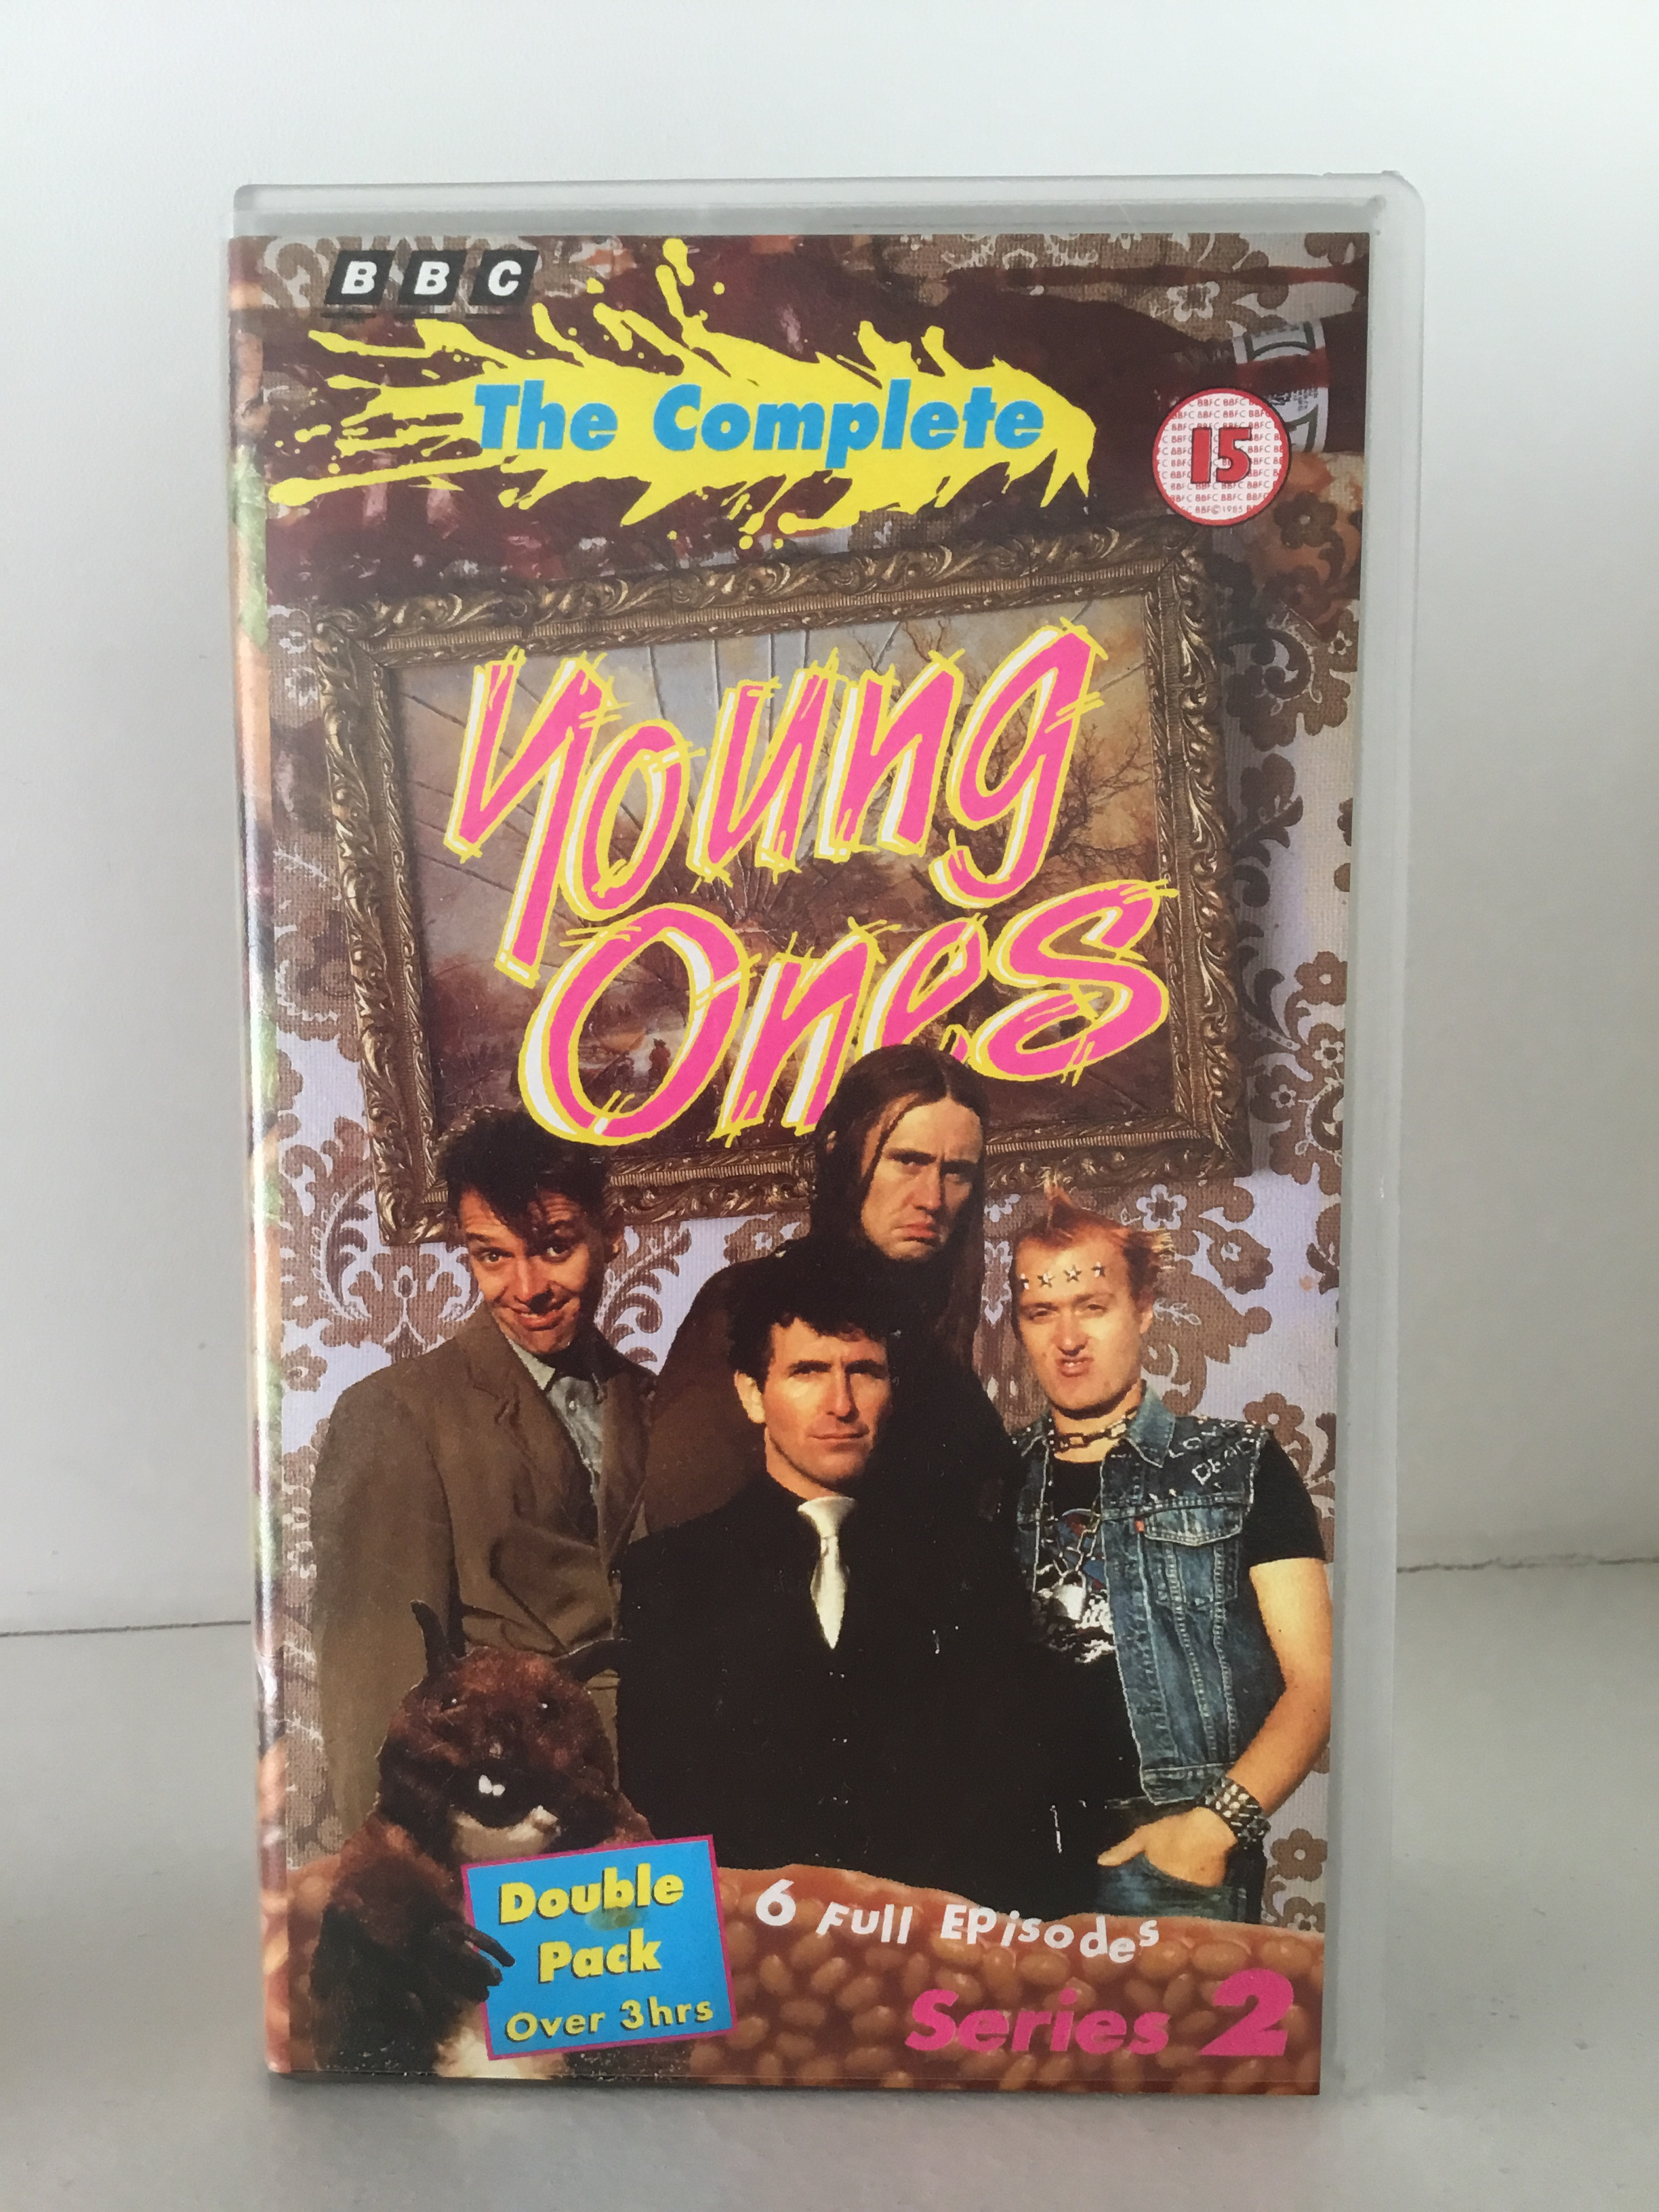 series 2 double tape edition of the young ones on VHS